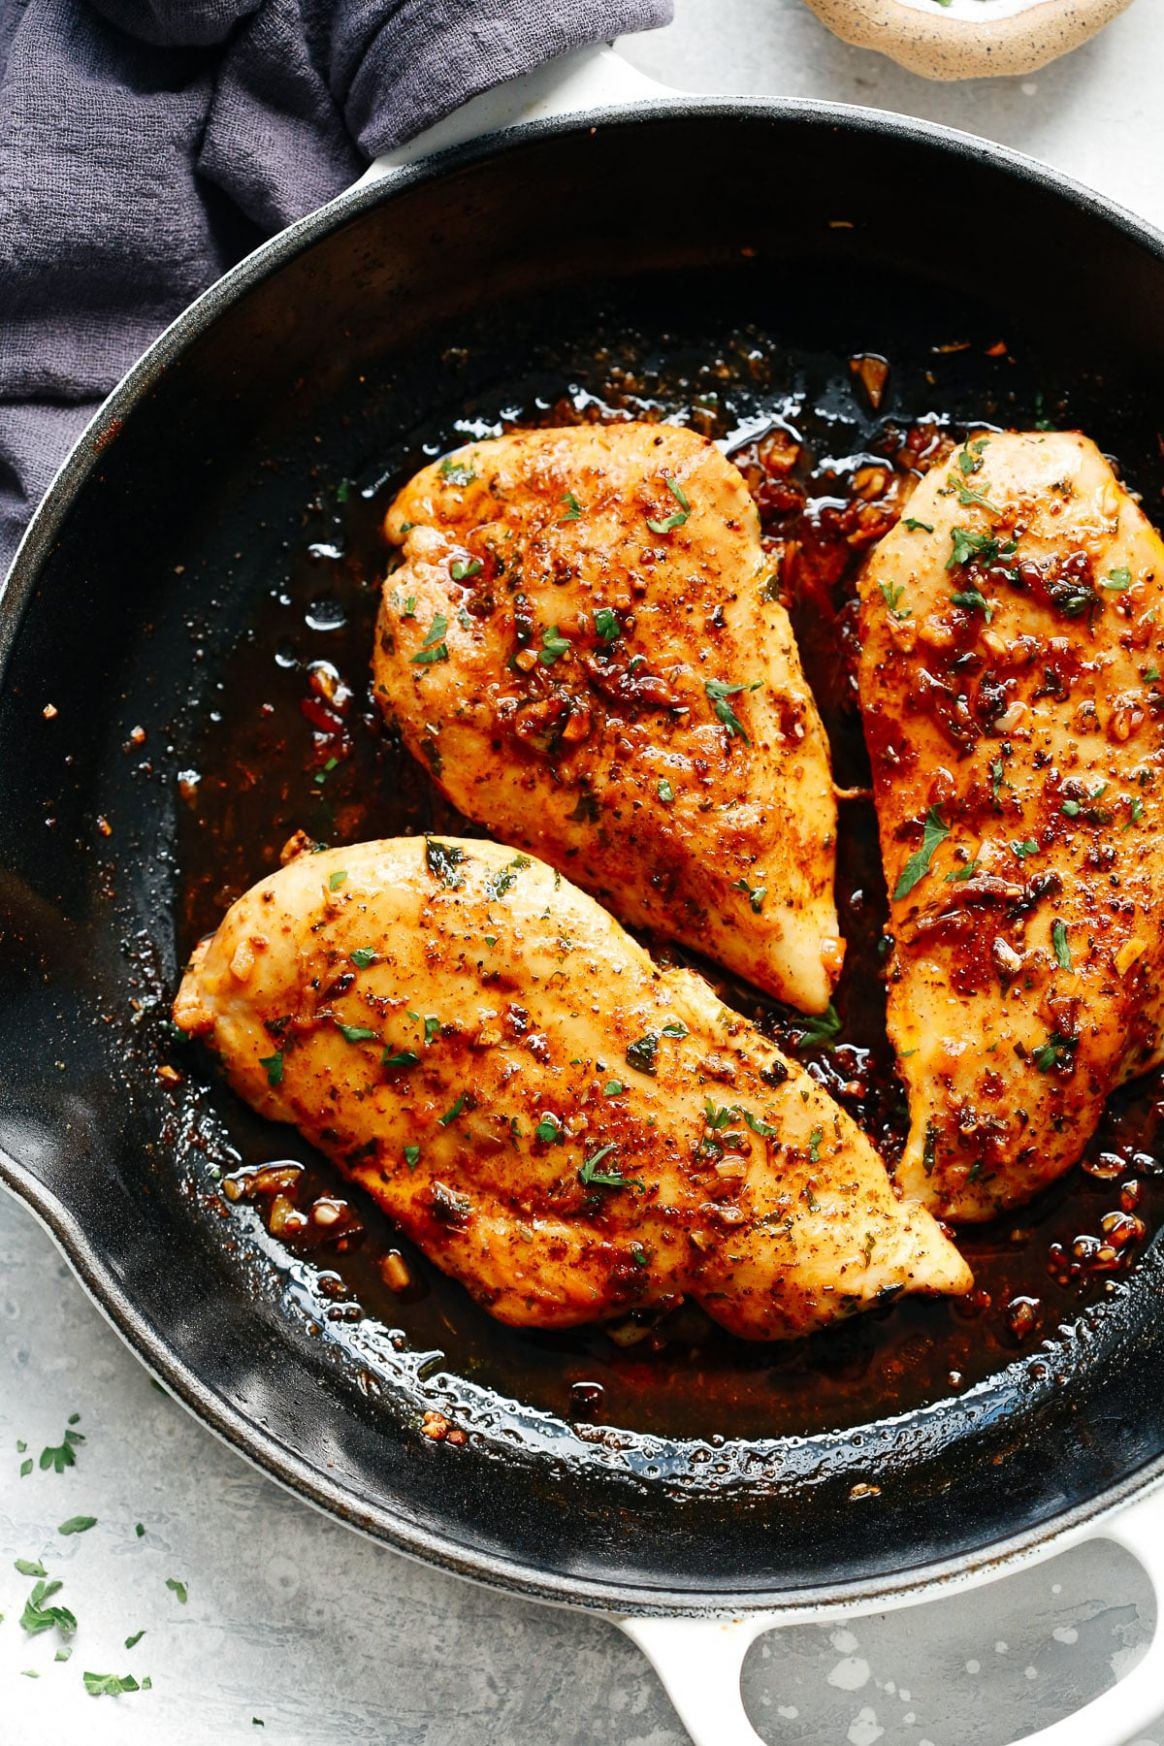 Garlic Butter Baked Chicken Breast - Recipes Chicken Breast Pan Fried